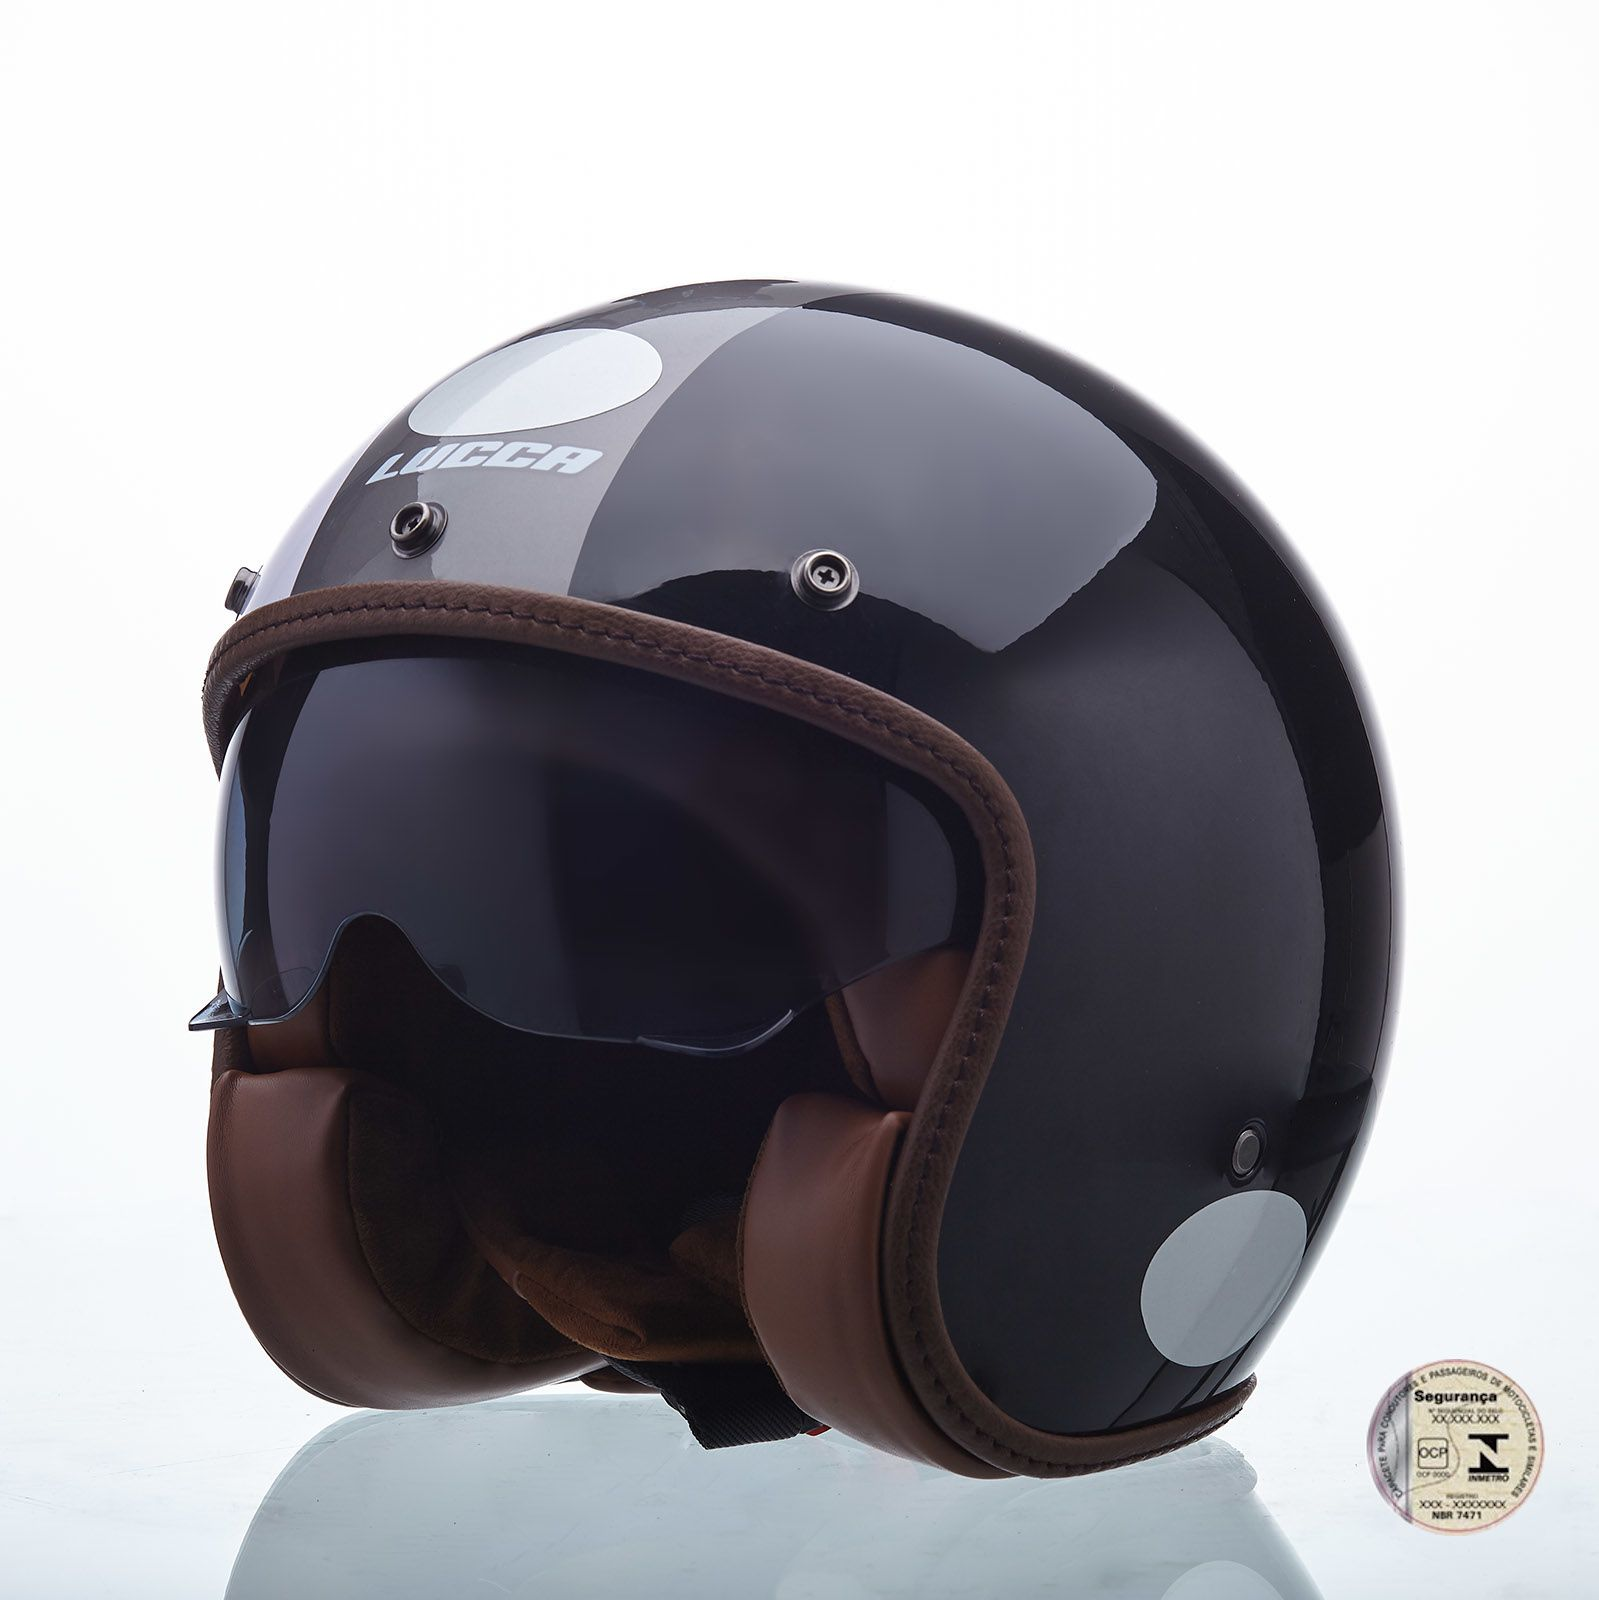 Capacete Lucca Customs Sublime Shades - Com Viseira Bolha